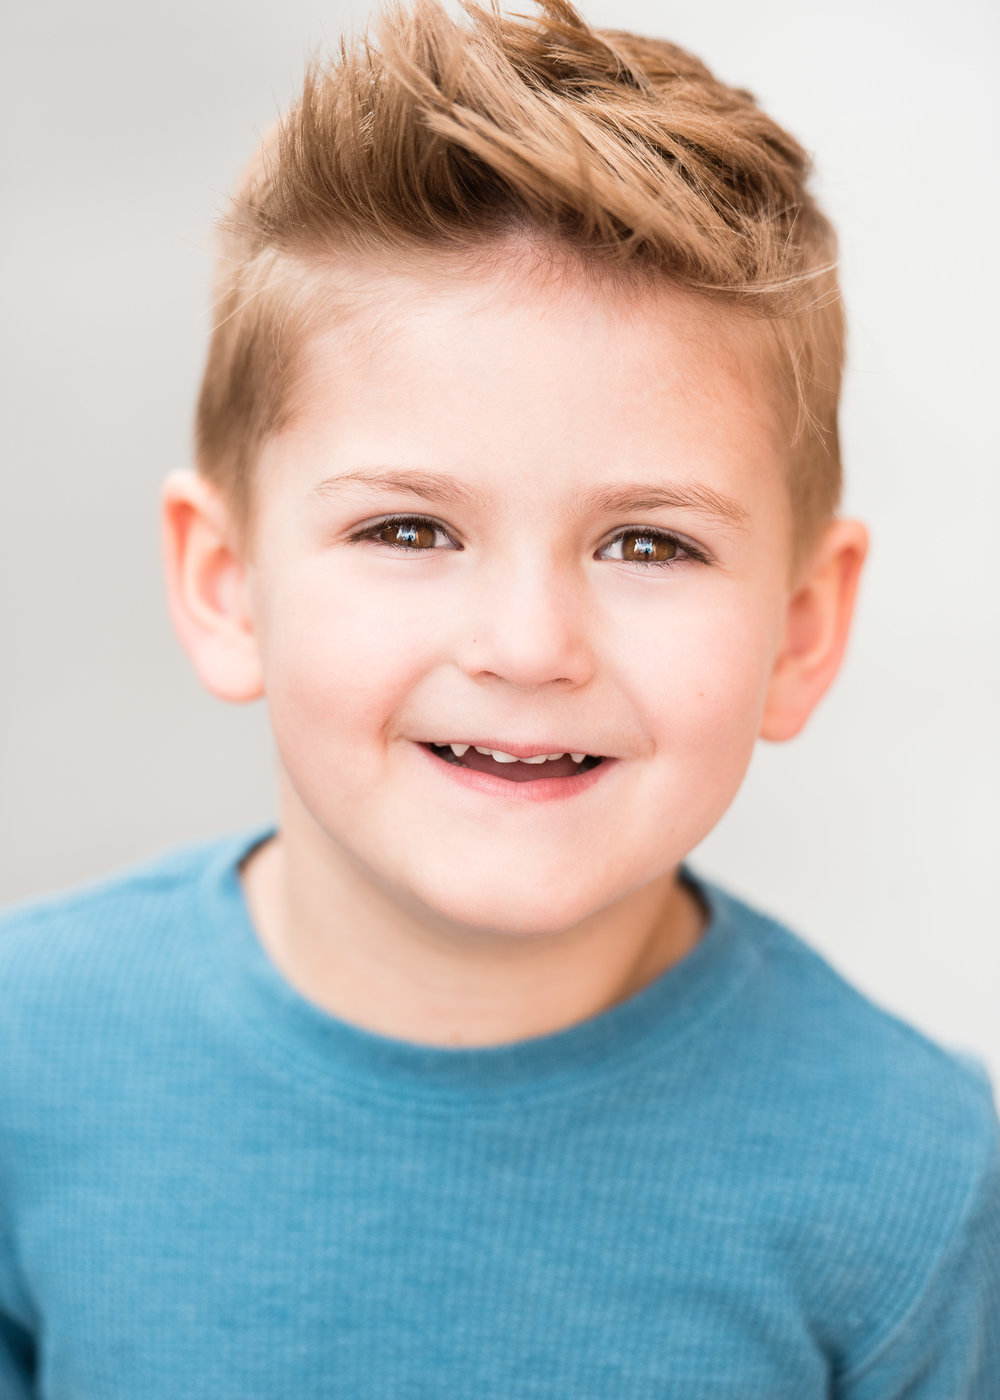 ChildrenHeadshots009.jpg